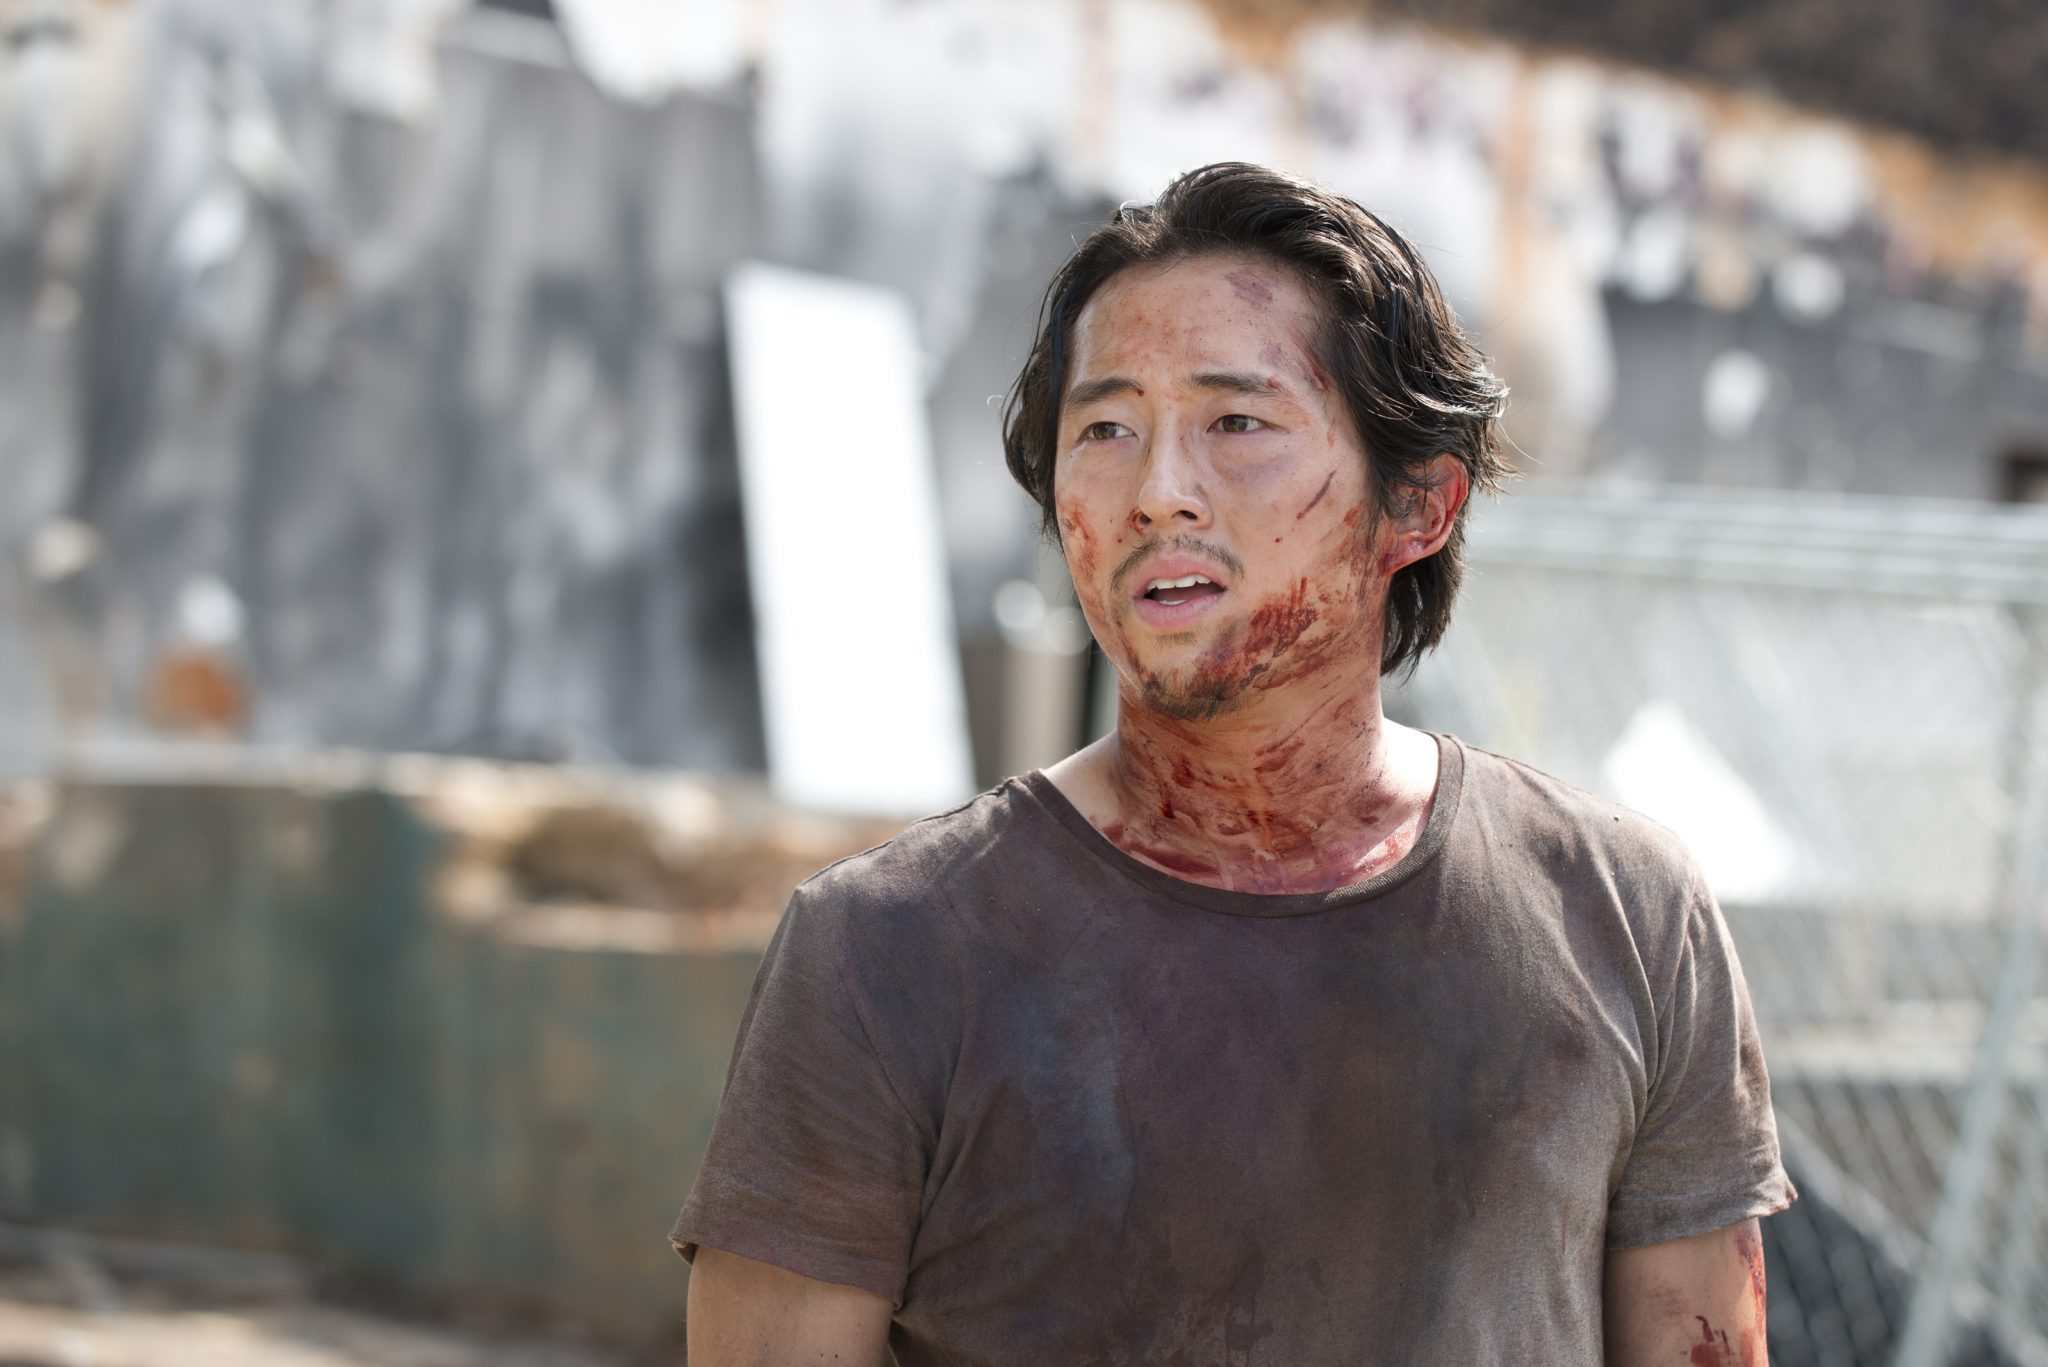 The Walking Dead season 6 ep 7